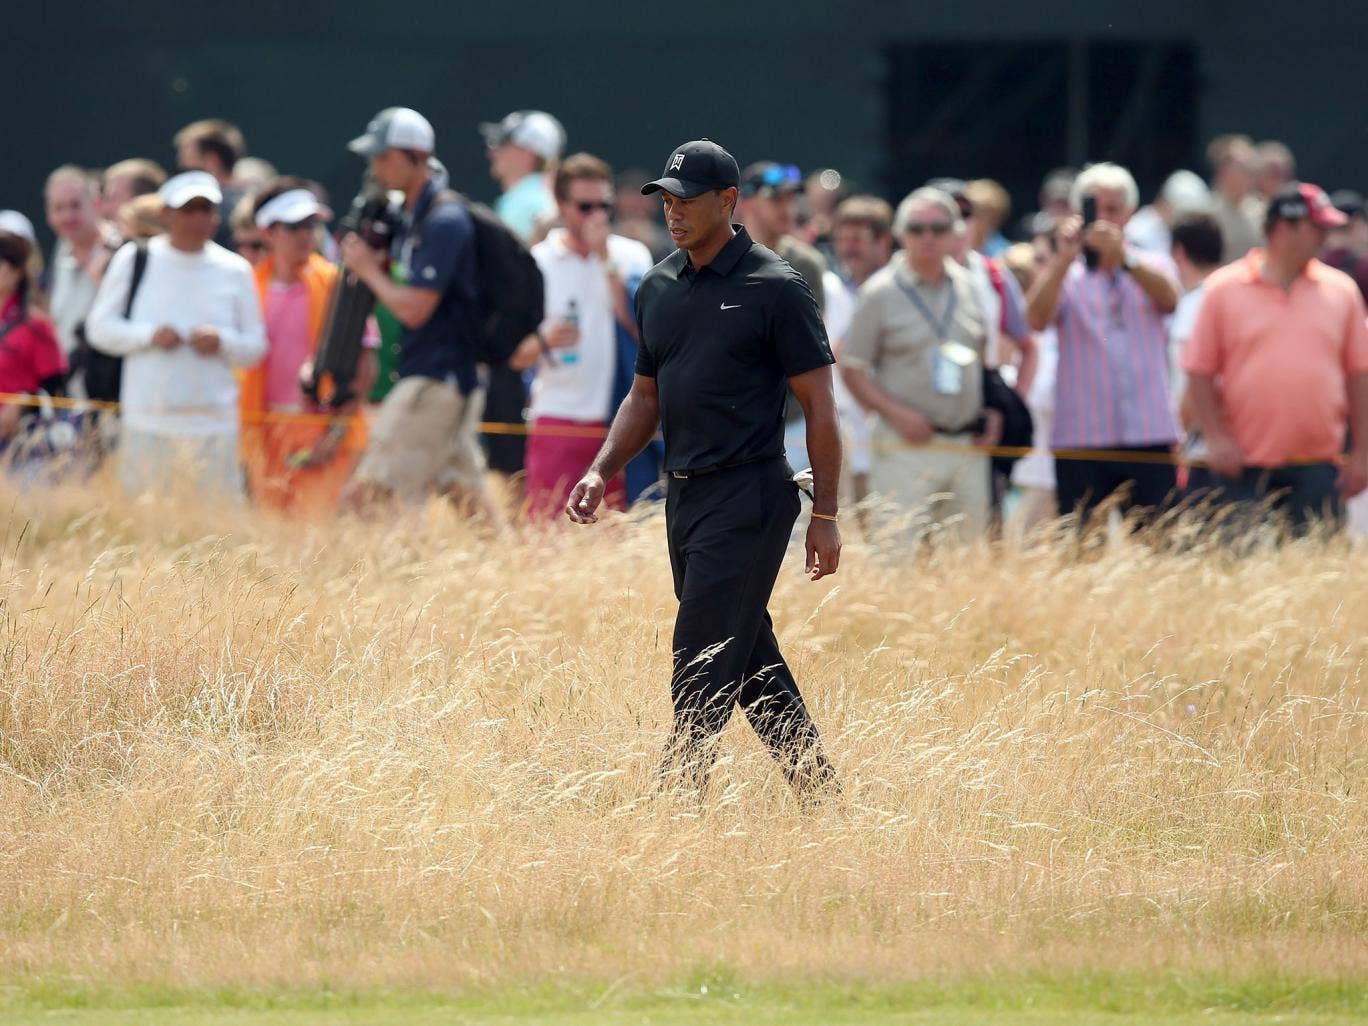 Tiger Woods goes searching for his ball in the rough after a stray drive on the first hole of the day